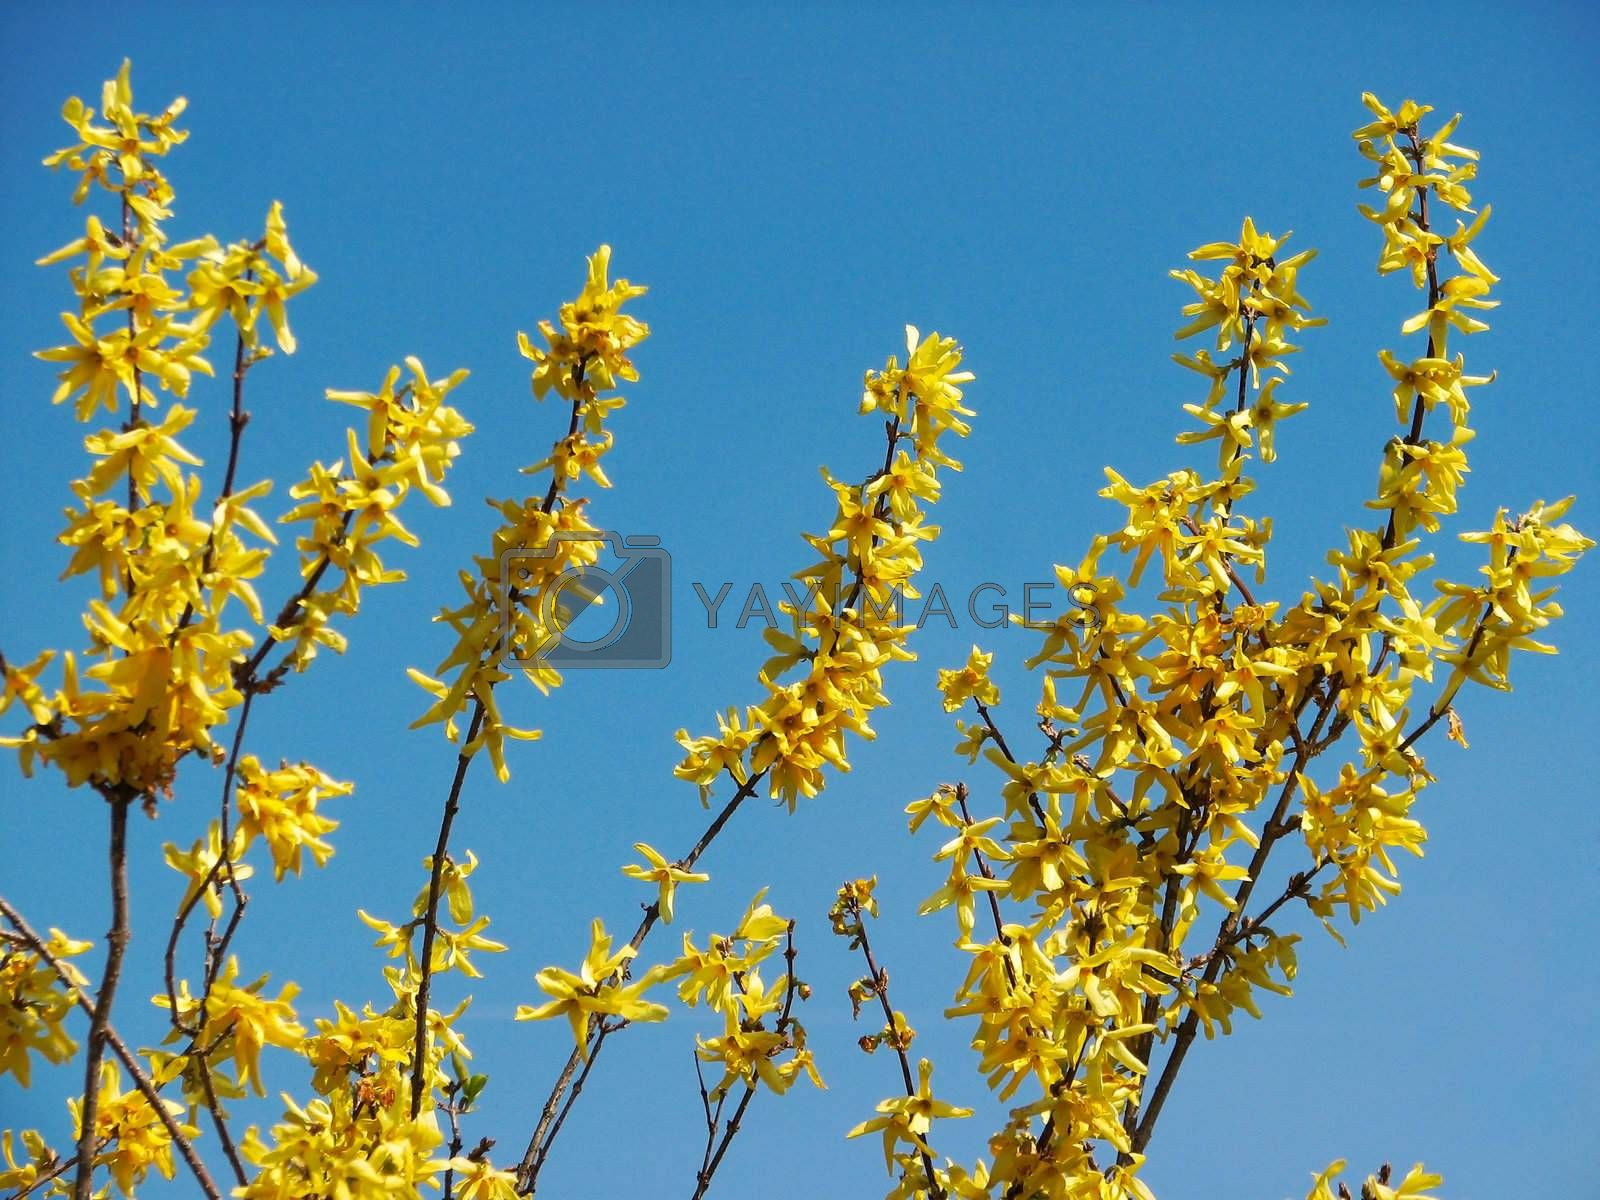 Some yellow flowers in front of bright blue sky